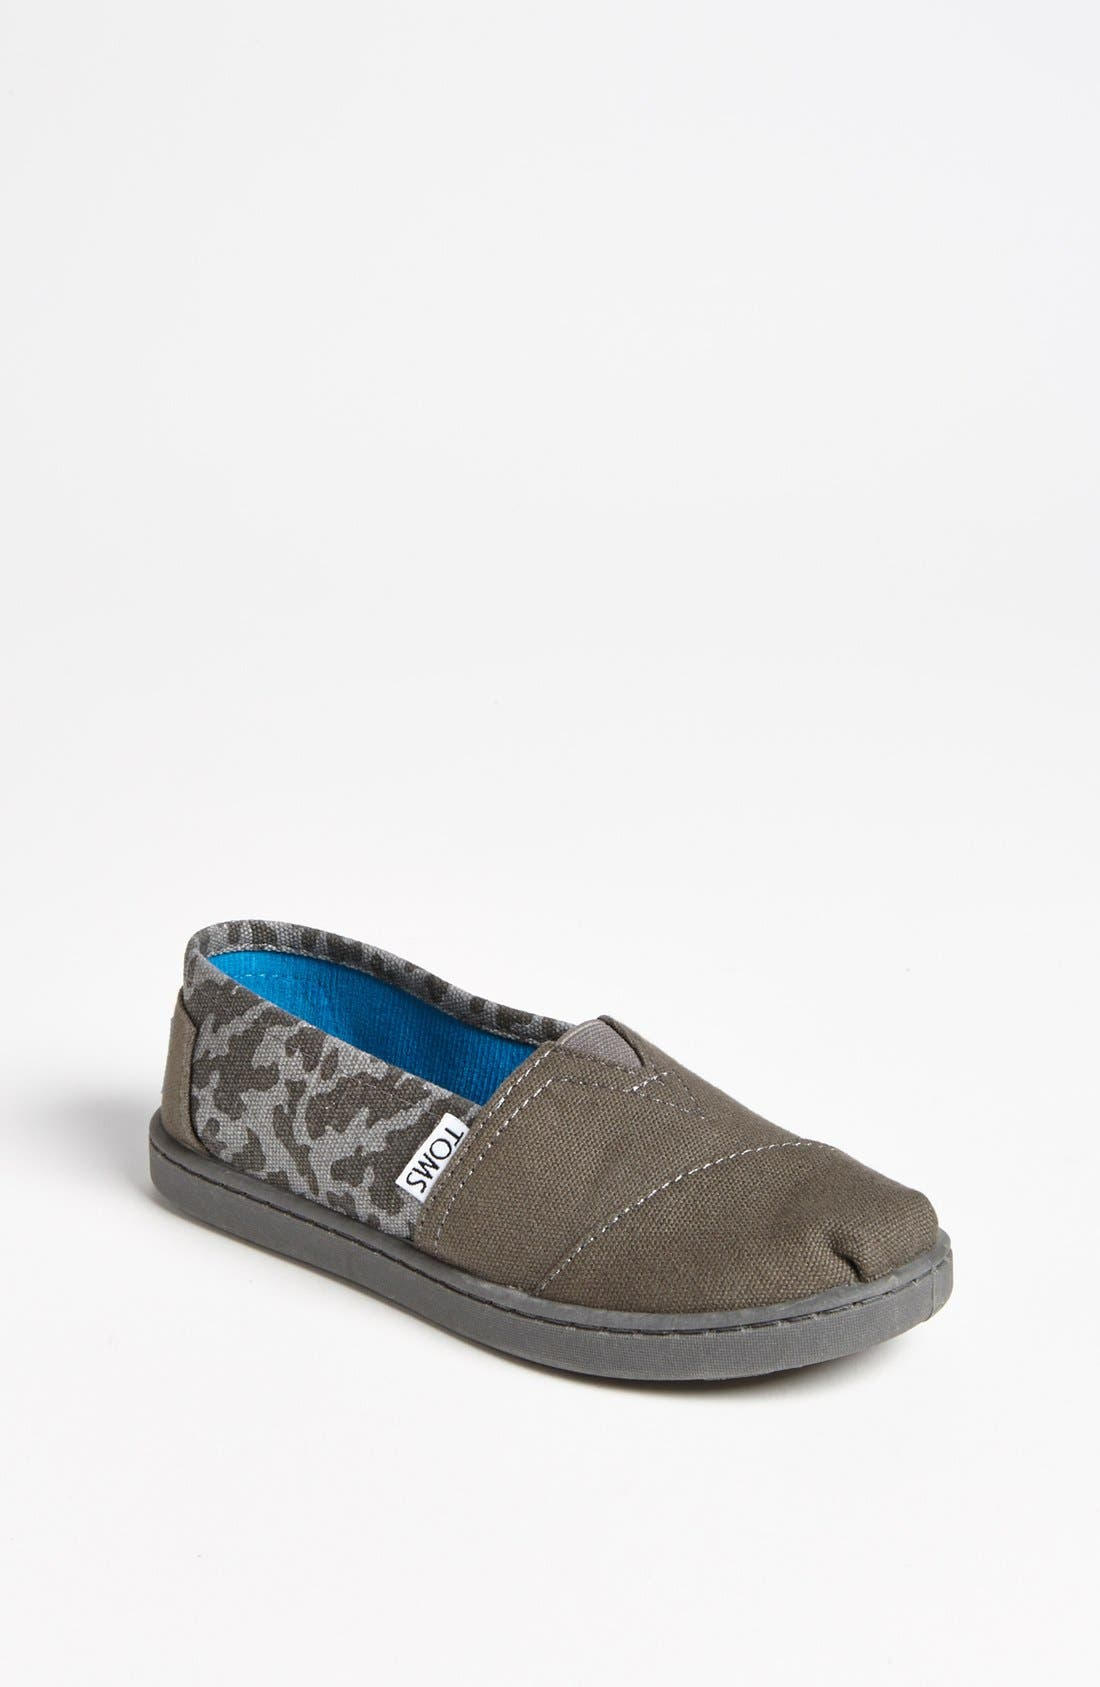 Main Image - TOMS 'Classic - Camo' Slip-On (Toddler, Little Kid & Big Kid)